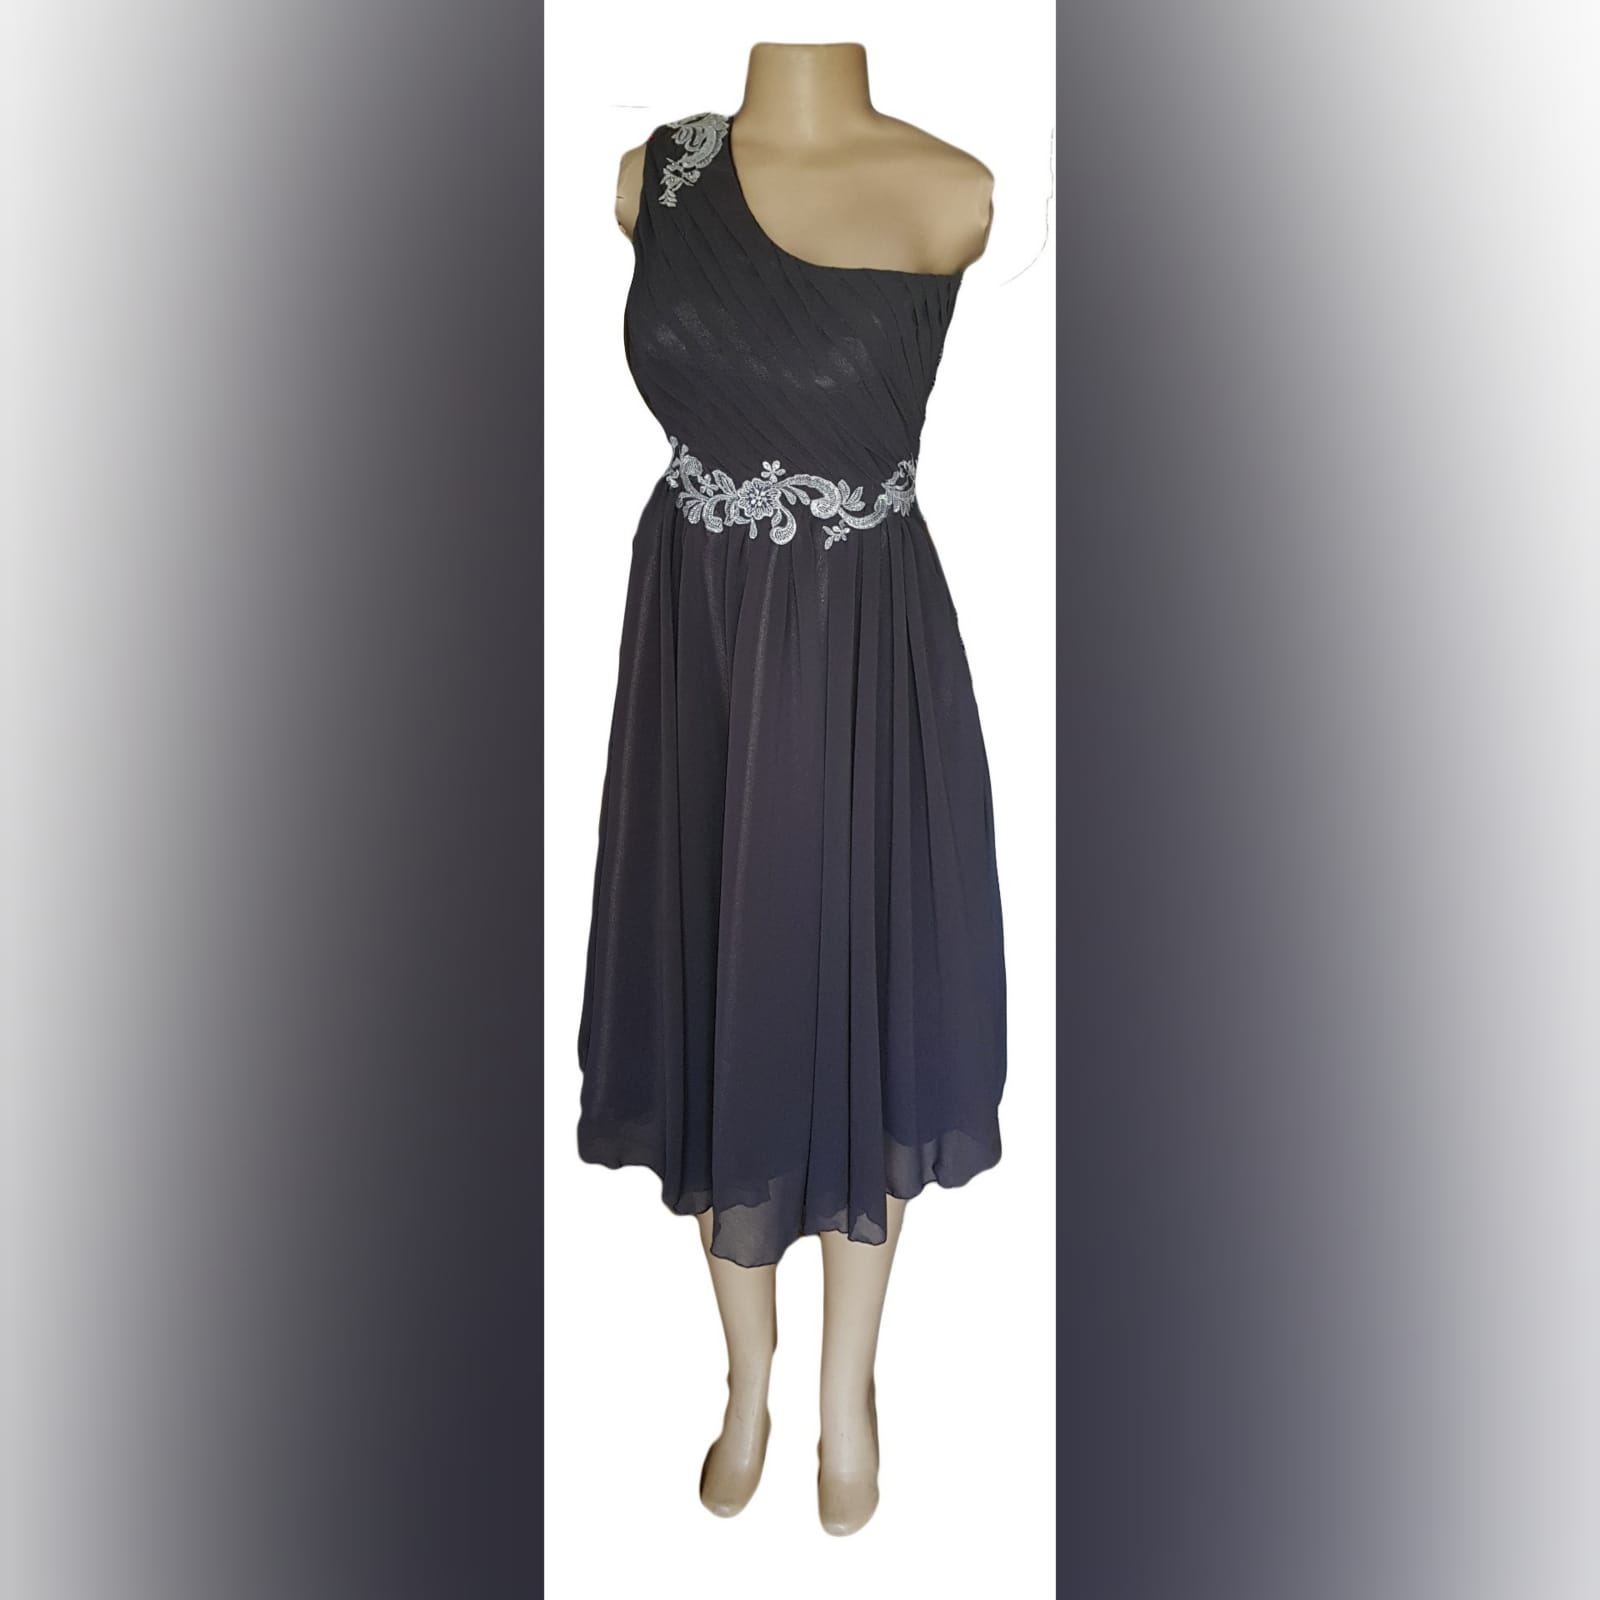 Grey & silver short maid of honour dress 6 grey & silver single shoulder knee length maid of honour dress with a ruched bodice